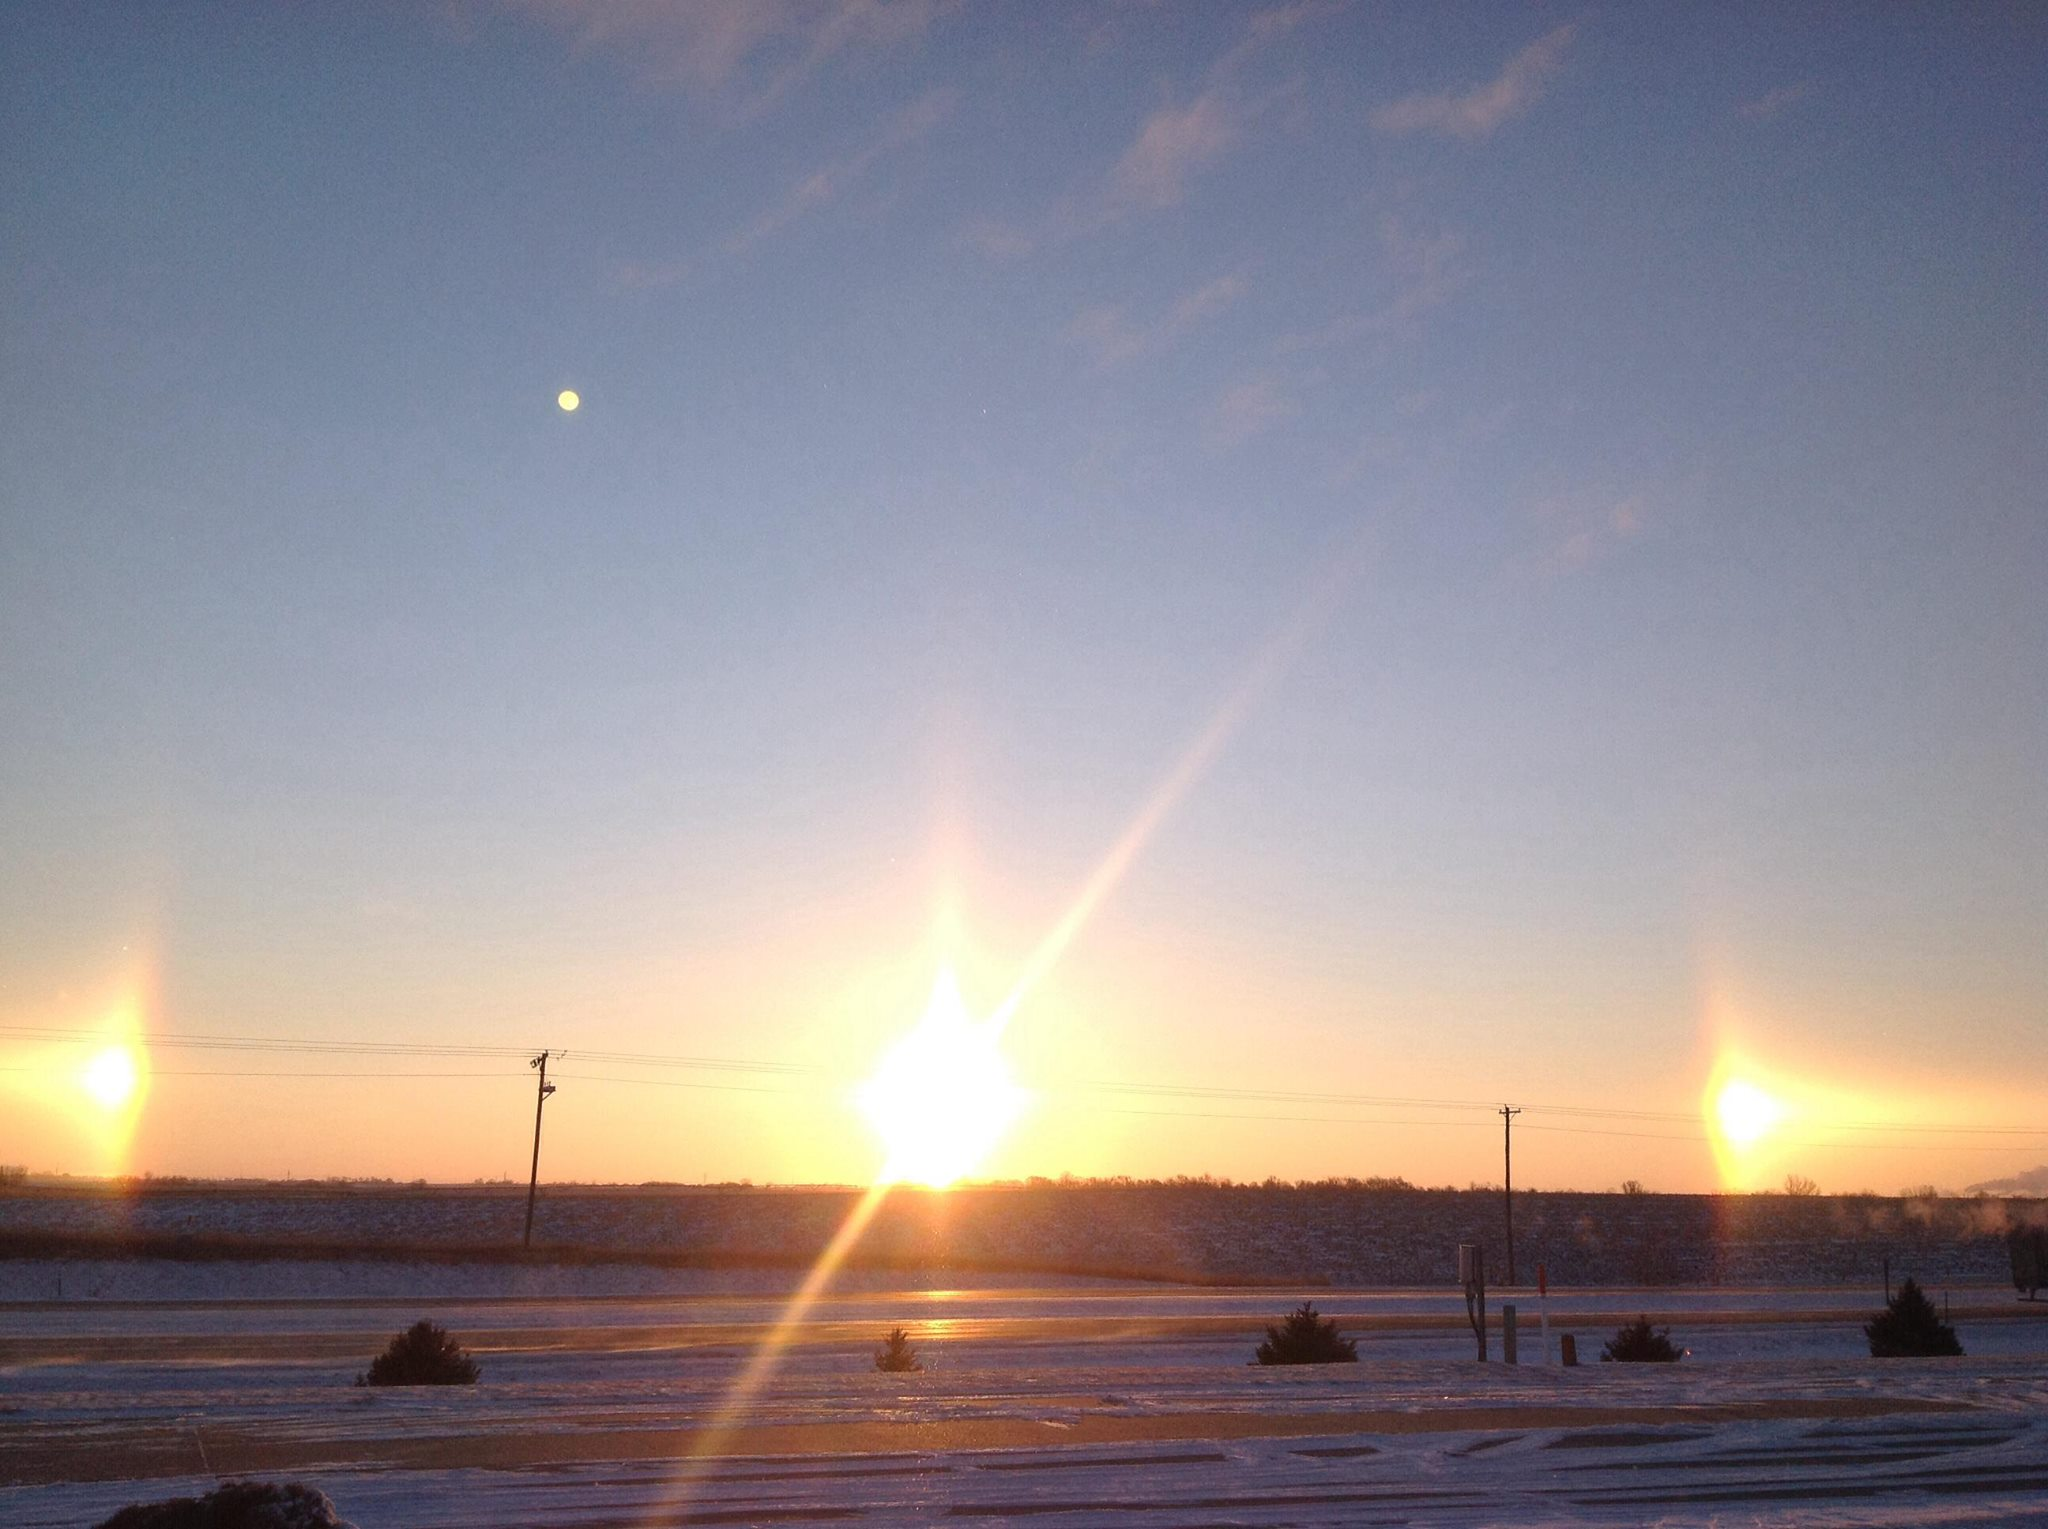 Sundogs were visible the day after the snow on Februrary 5, 2014.